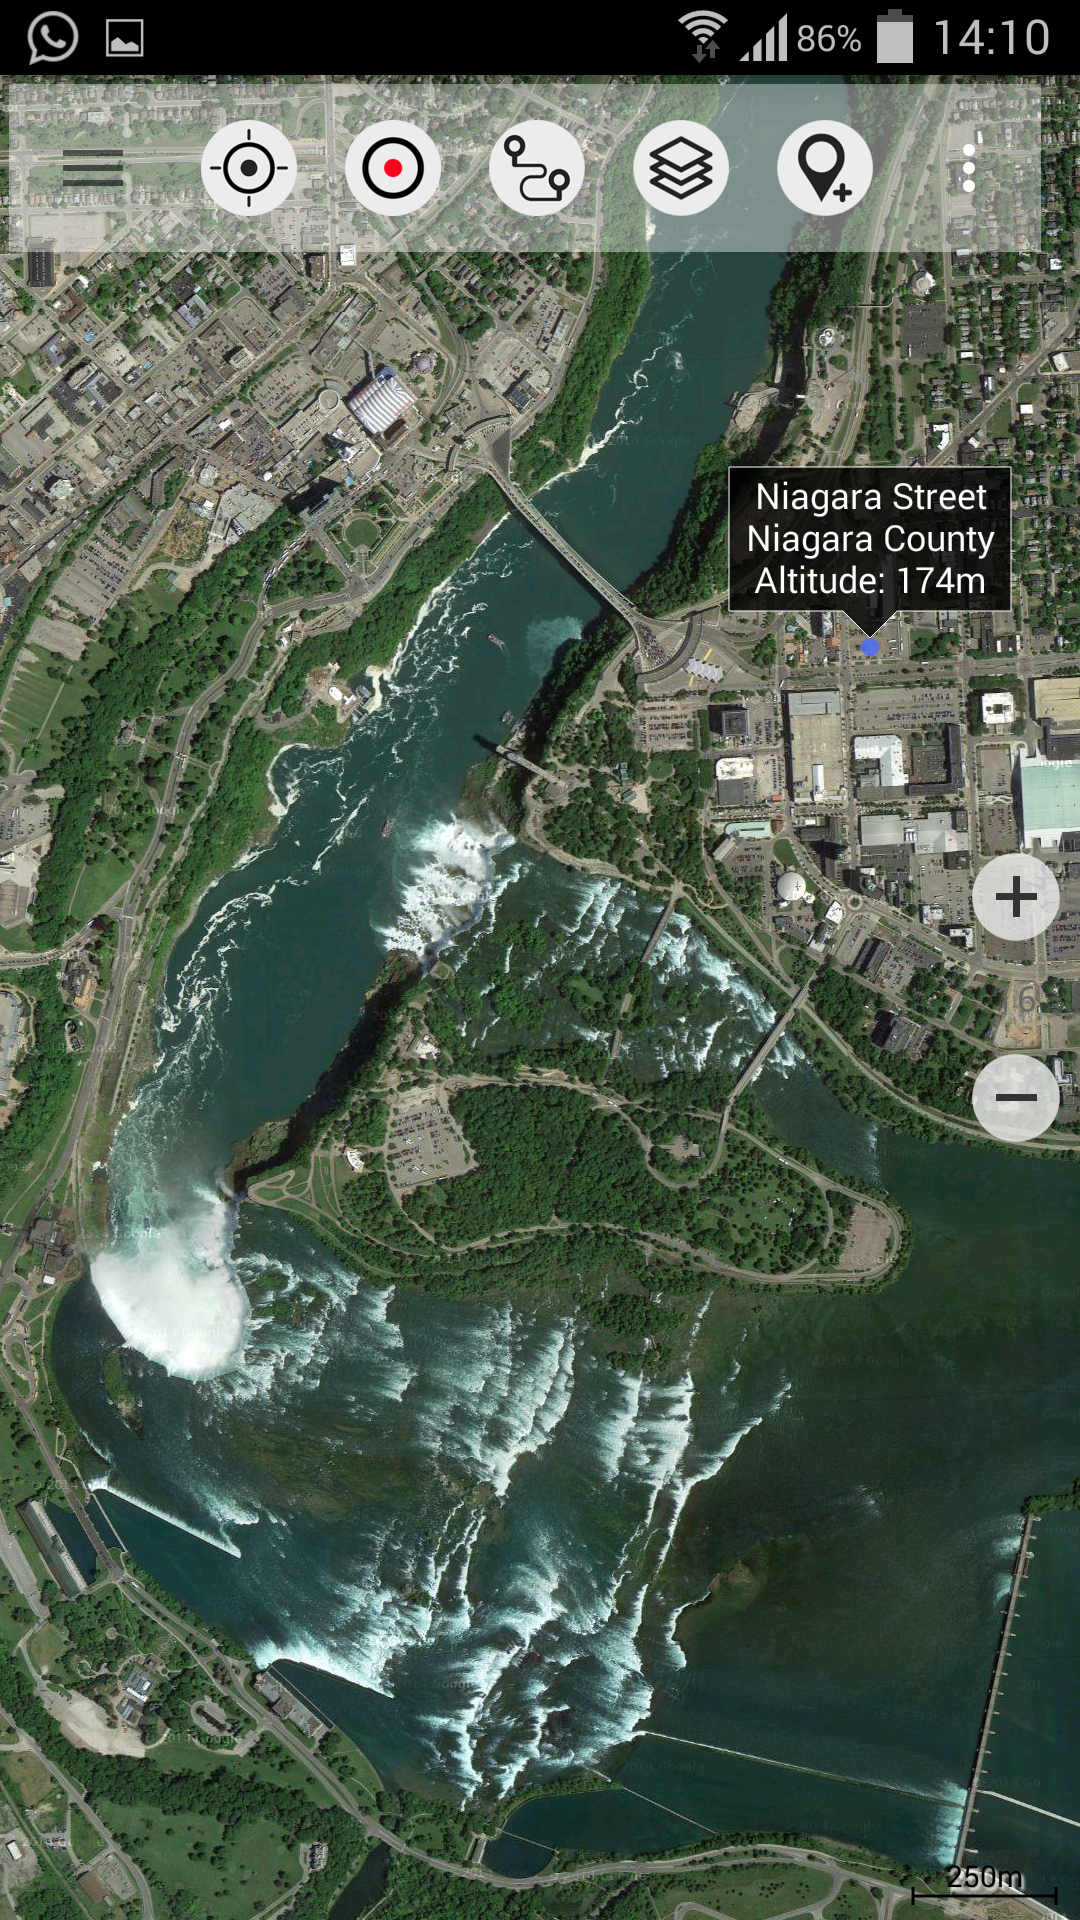 Canada Topo Maps Pro Amazonca Appstore For Android - How to increase cache size us topo maps pro